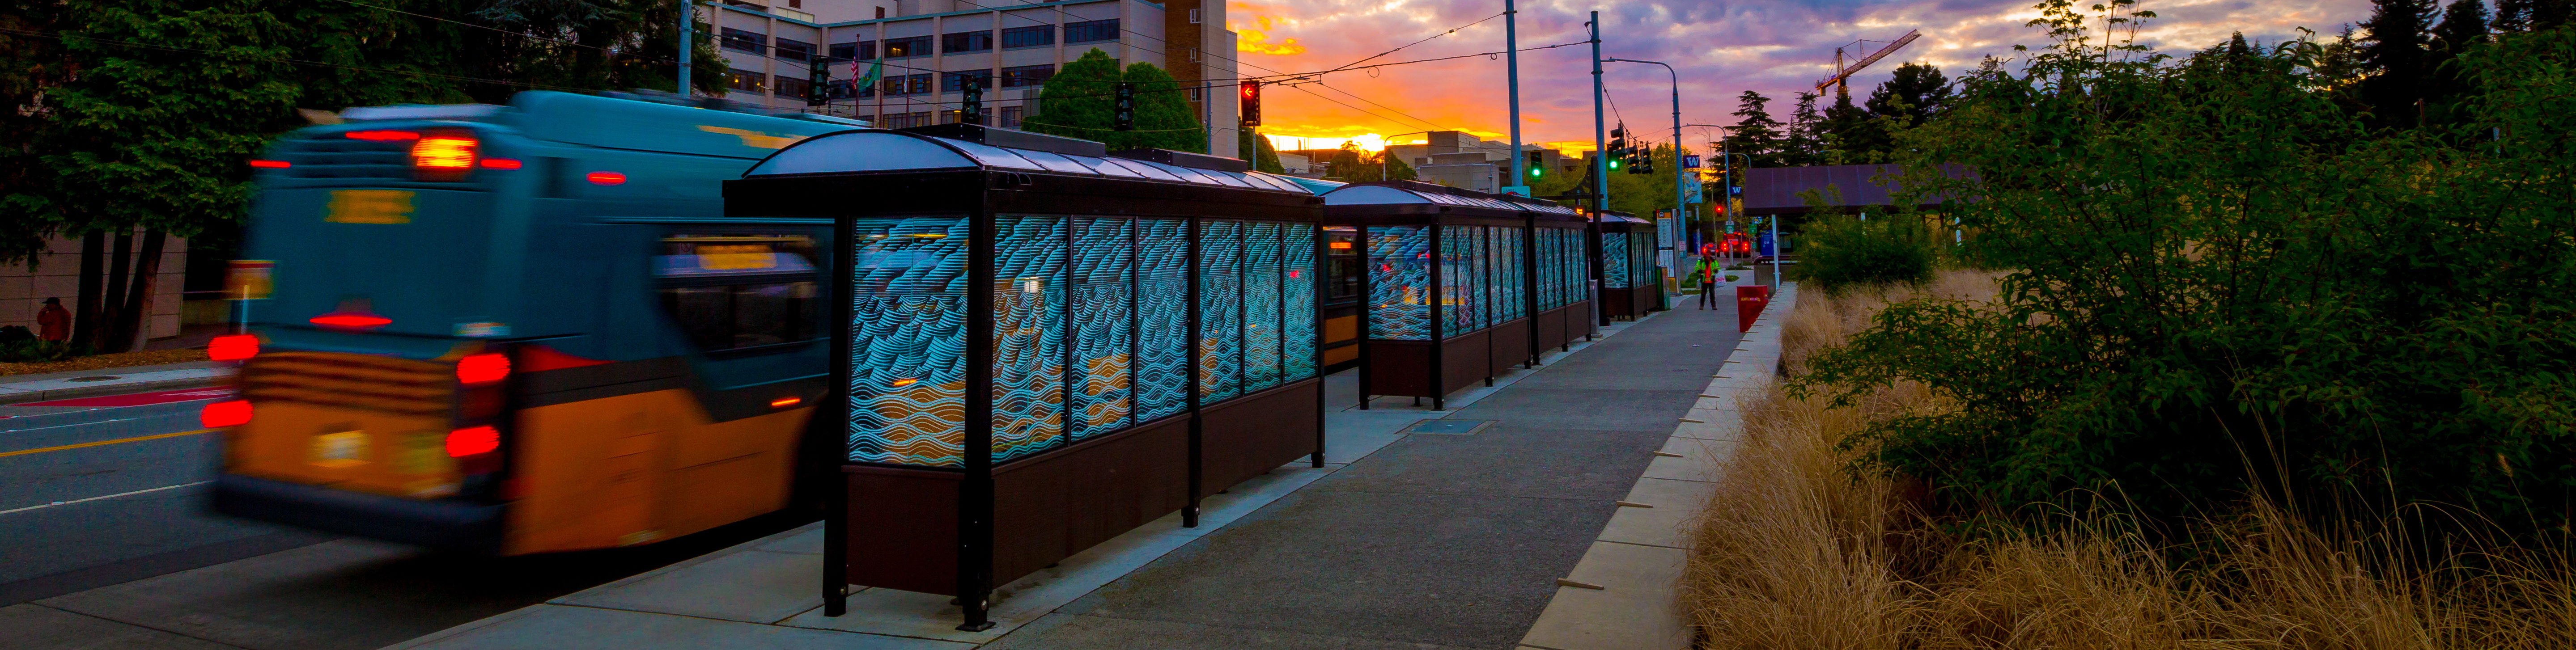 Urban Solar bus stops in Seattle on April 20, 2017.(Photography by Scott Eklund/Red Box Pictures)